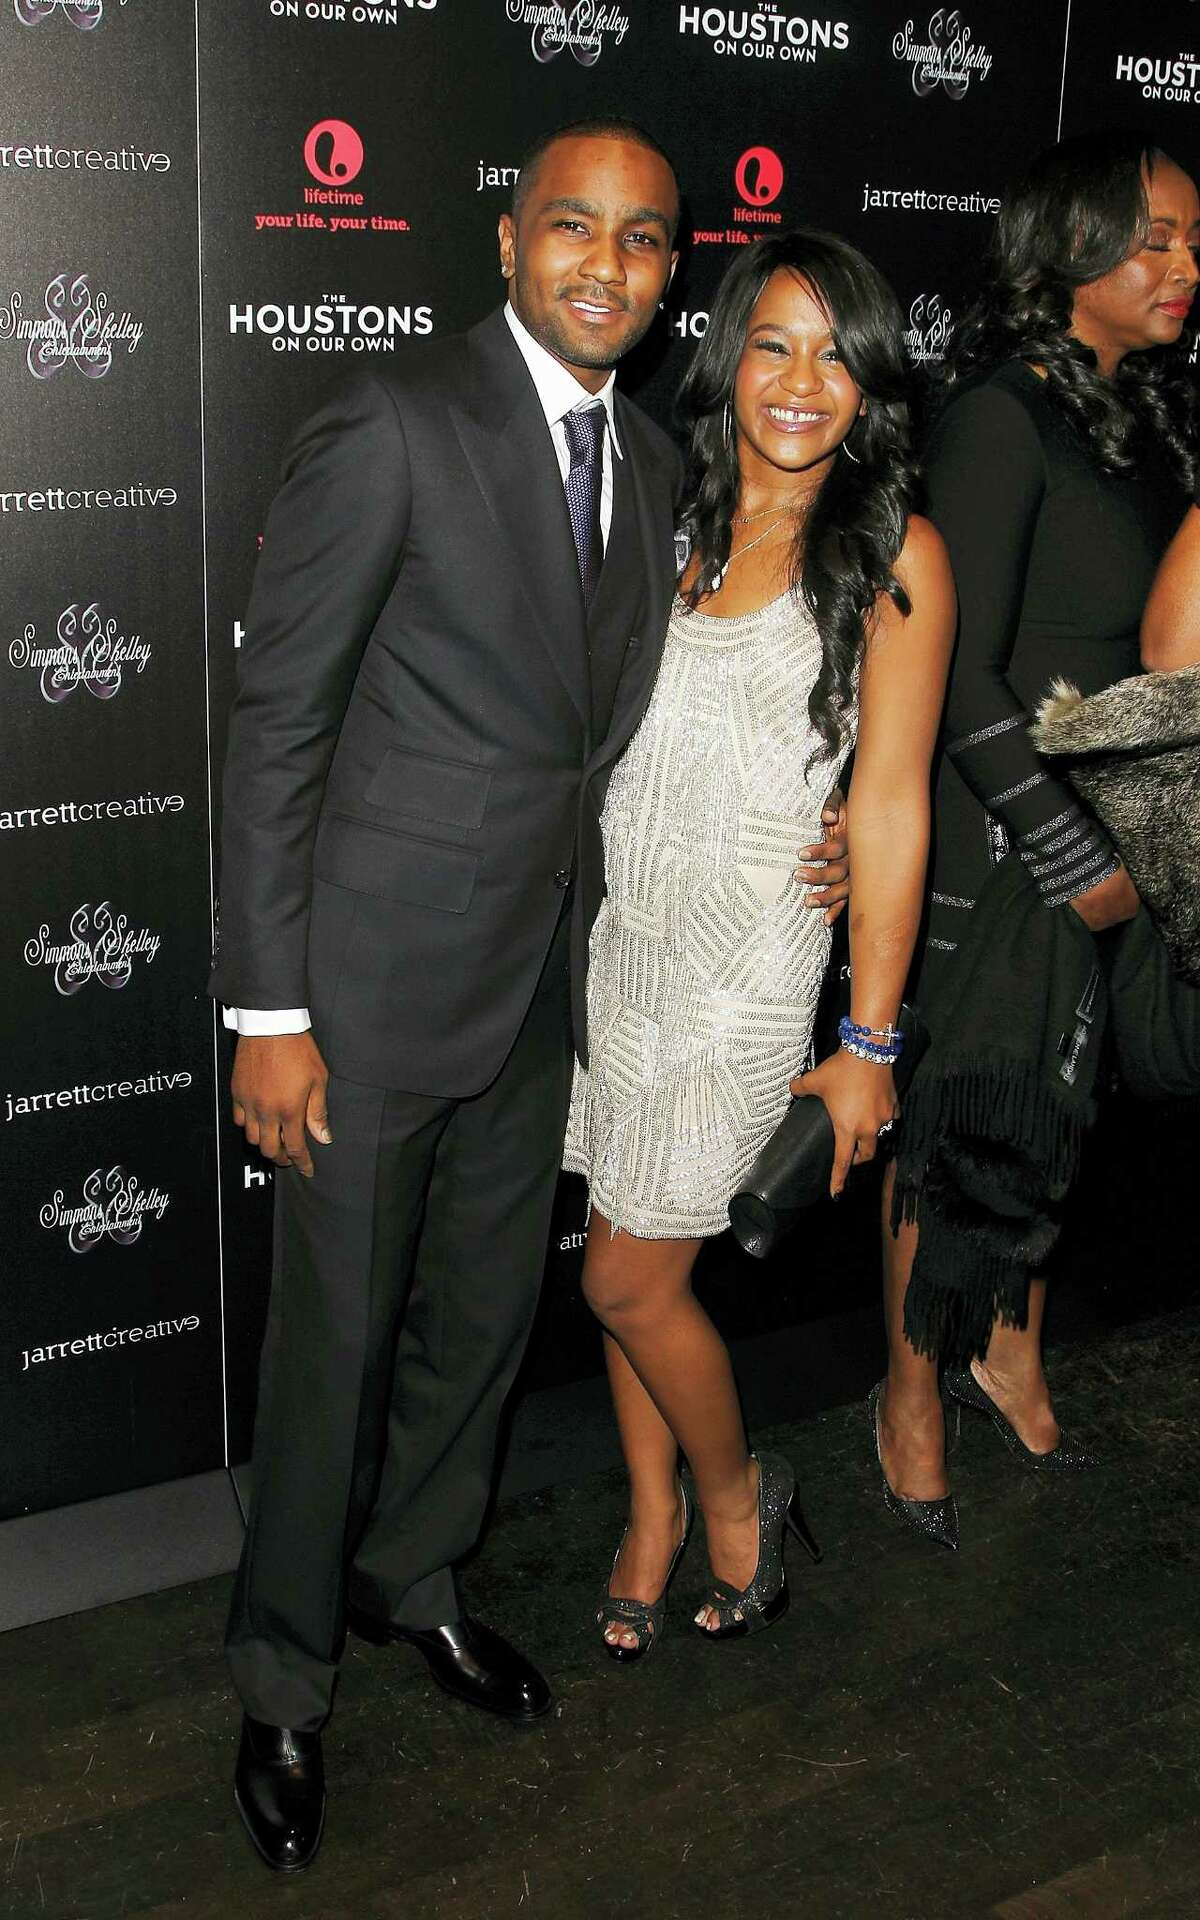 """This Oct. 12, 2012, file photo shows Nick Gordon and Bobbi Kristina Brown attending the premiere party for """"The Houstons On Our Own"""" at the Tribeca Grand hotel in New York. A judge in Atlanta on Friday, Sept. 16, 2016, ruled against Gordon, in a wrongful death lawsuit filed by her estate. Fulton County Superior Court Judge T. Jackson Bedford signed an order saying Gordon repeatedly failed to meet court deadlines in the case and, therefore, the conservator of her estate wins by default."""